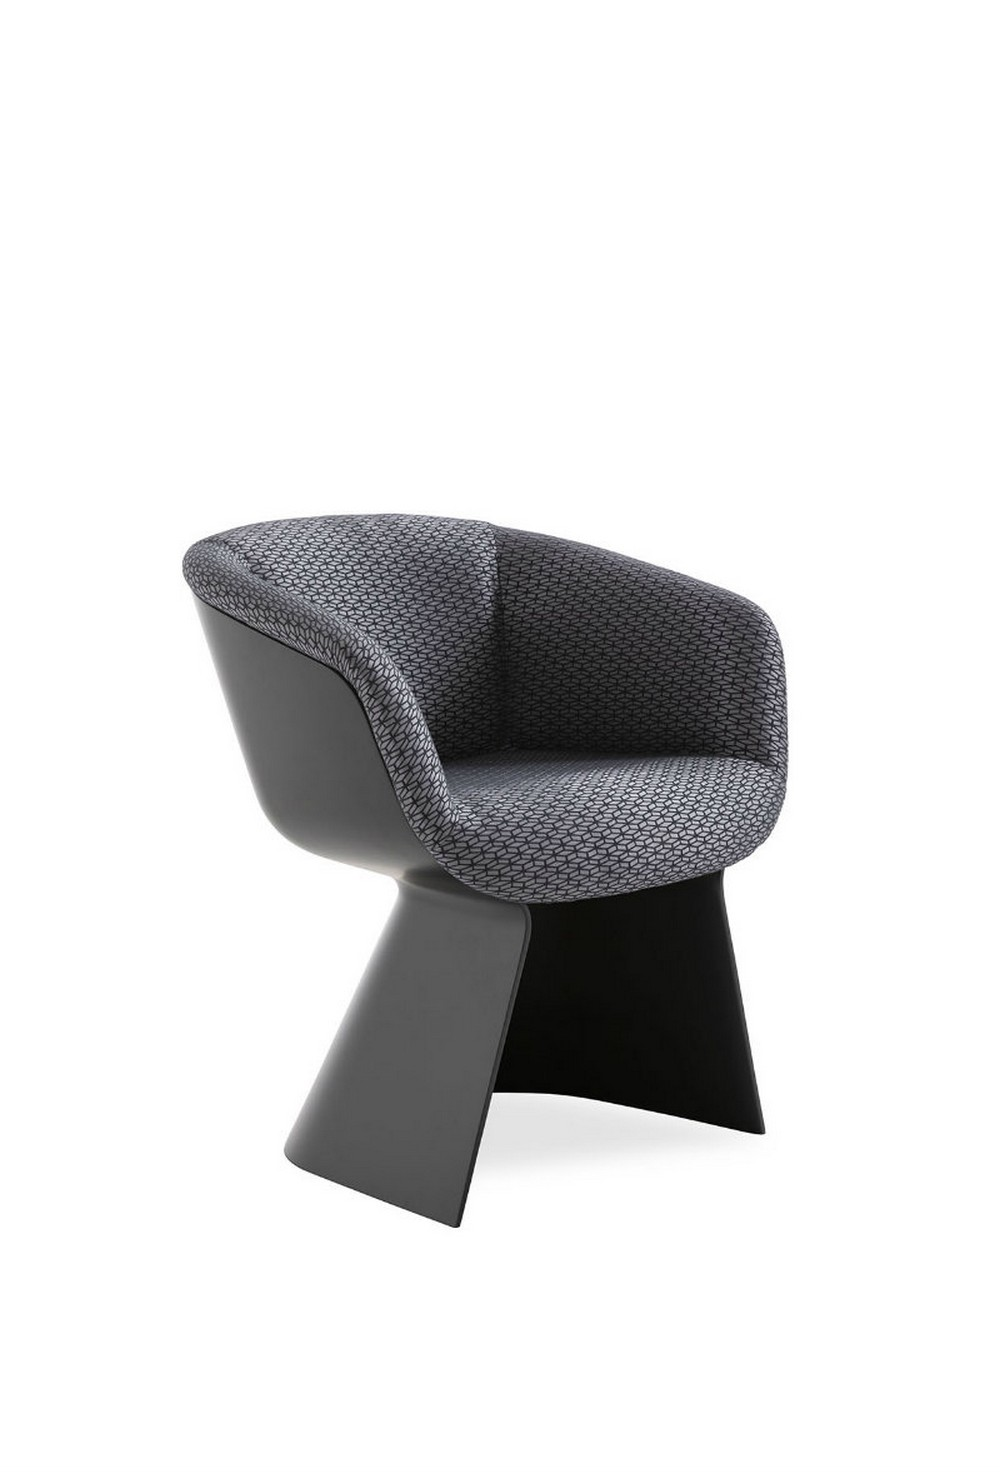 italian brands These chairs and sofas from Italian brands will glamorize your home VITESSE ARMCHAIR